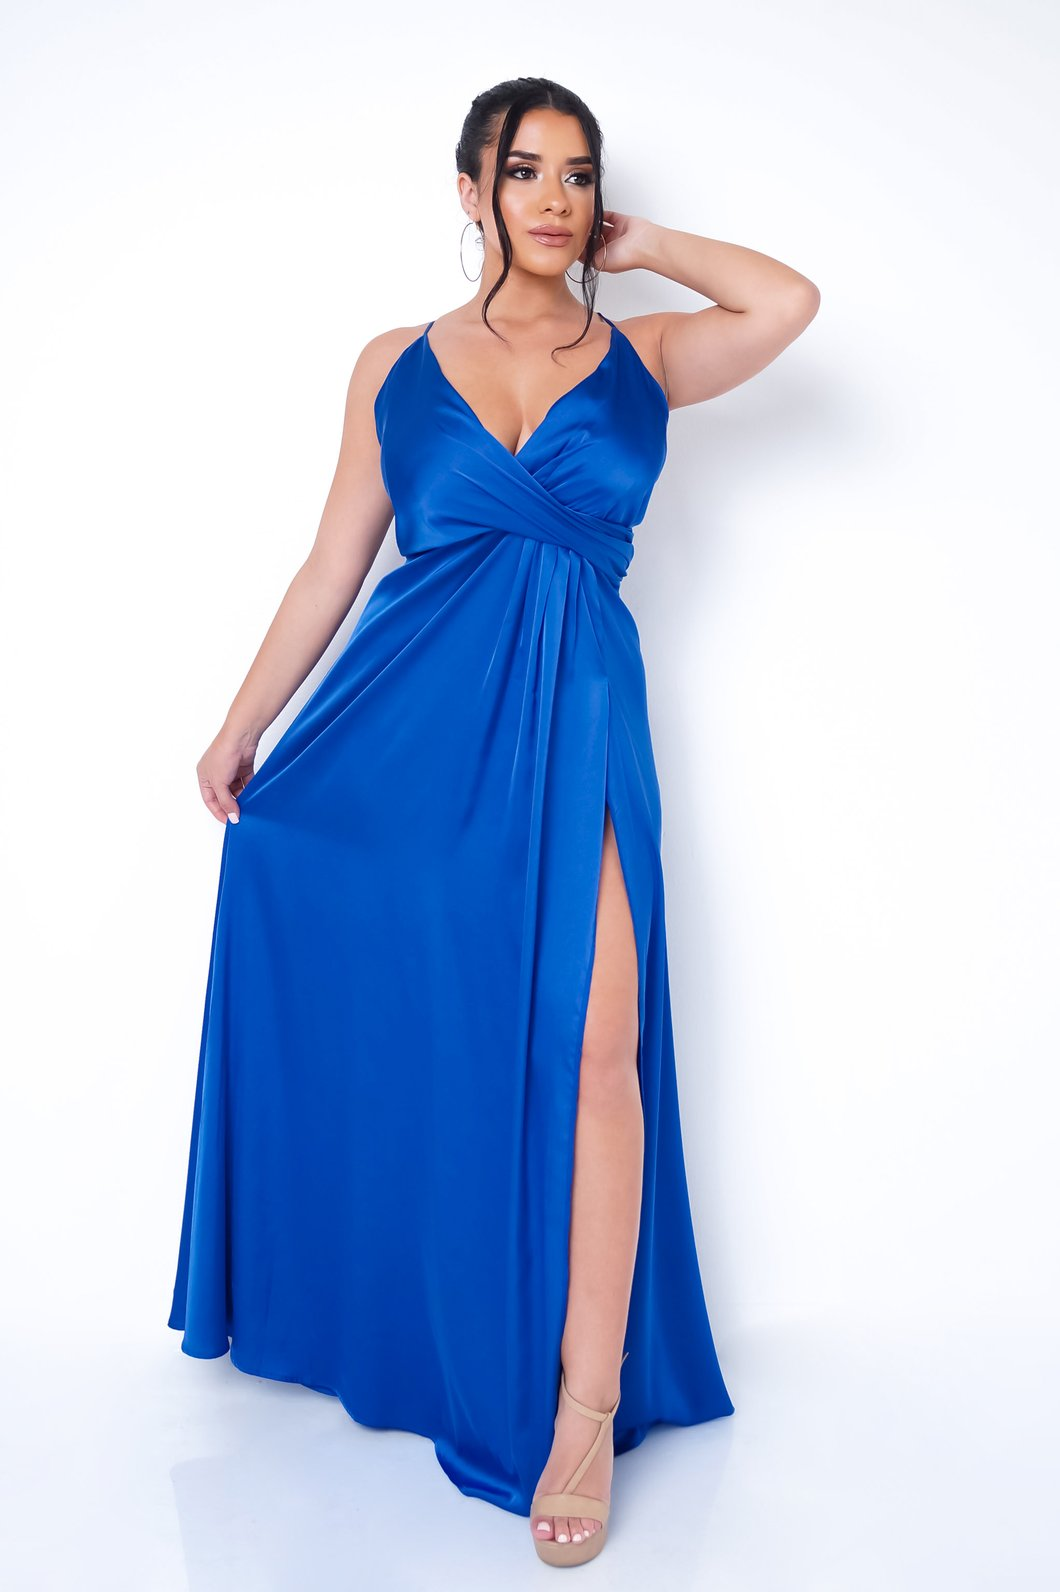 Front full body view of a plus size model in a blue beauty gown with a high slit